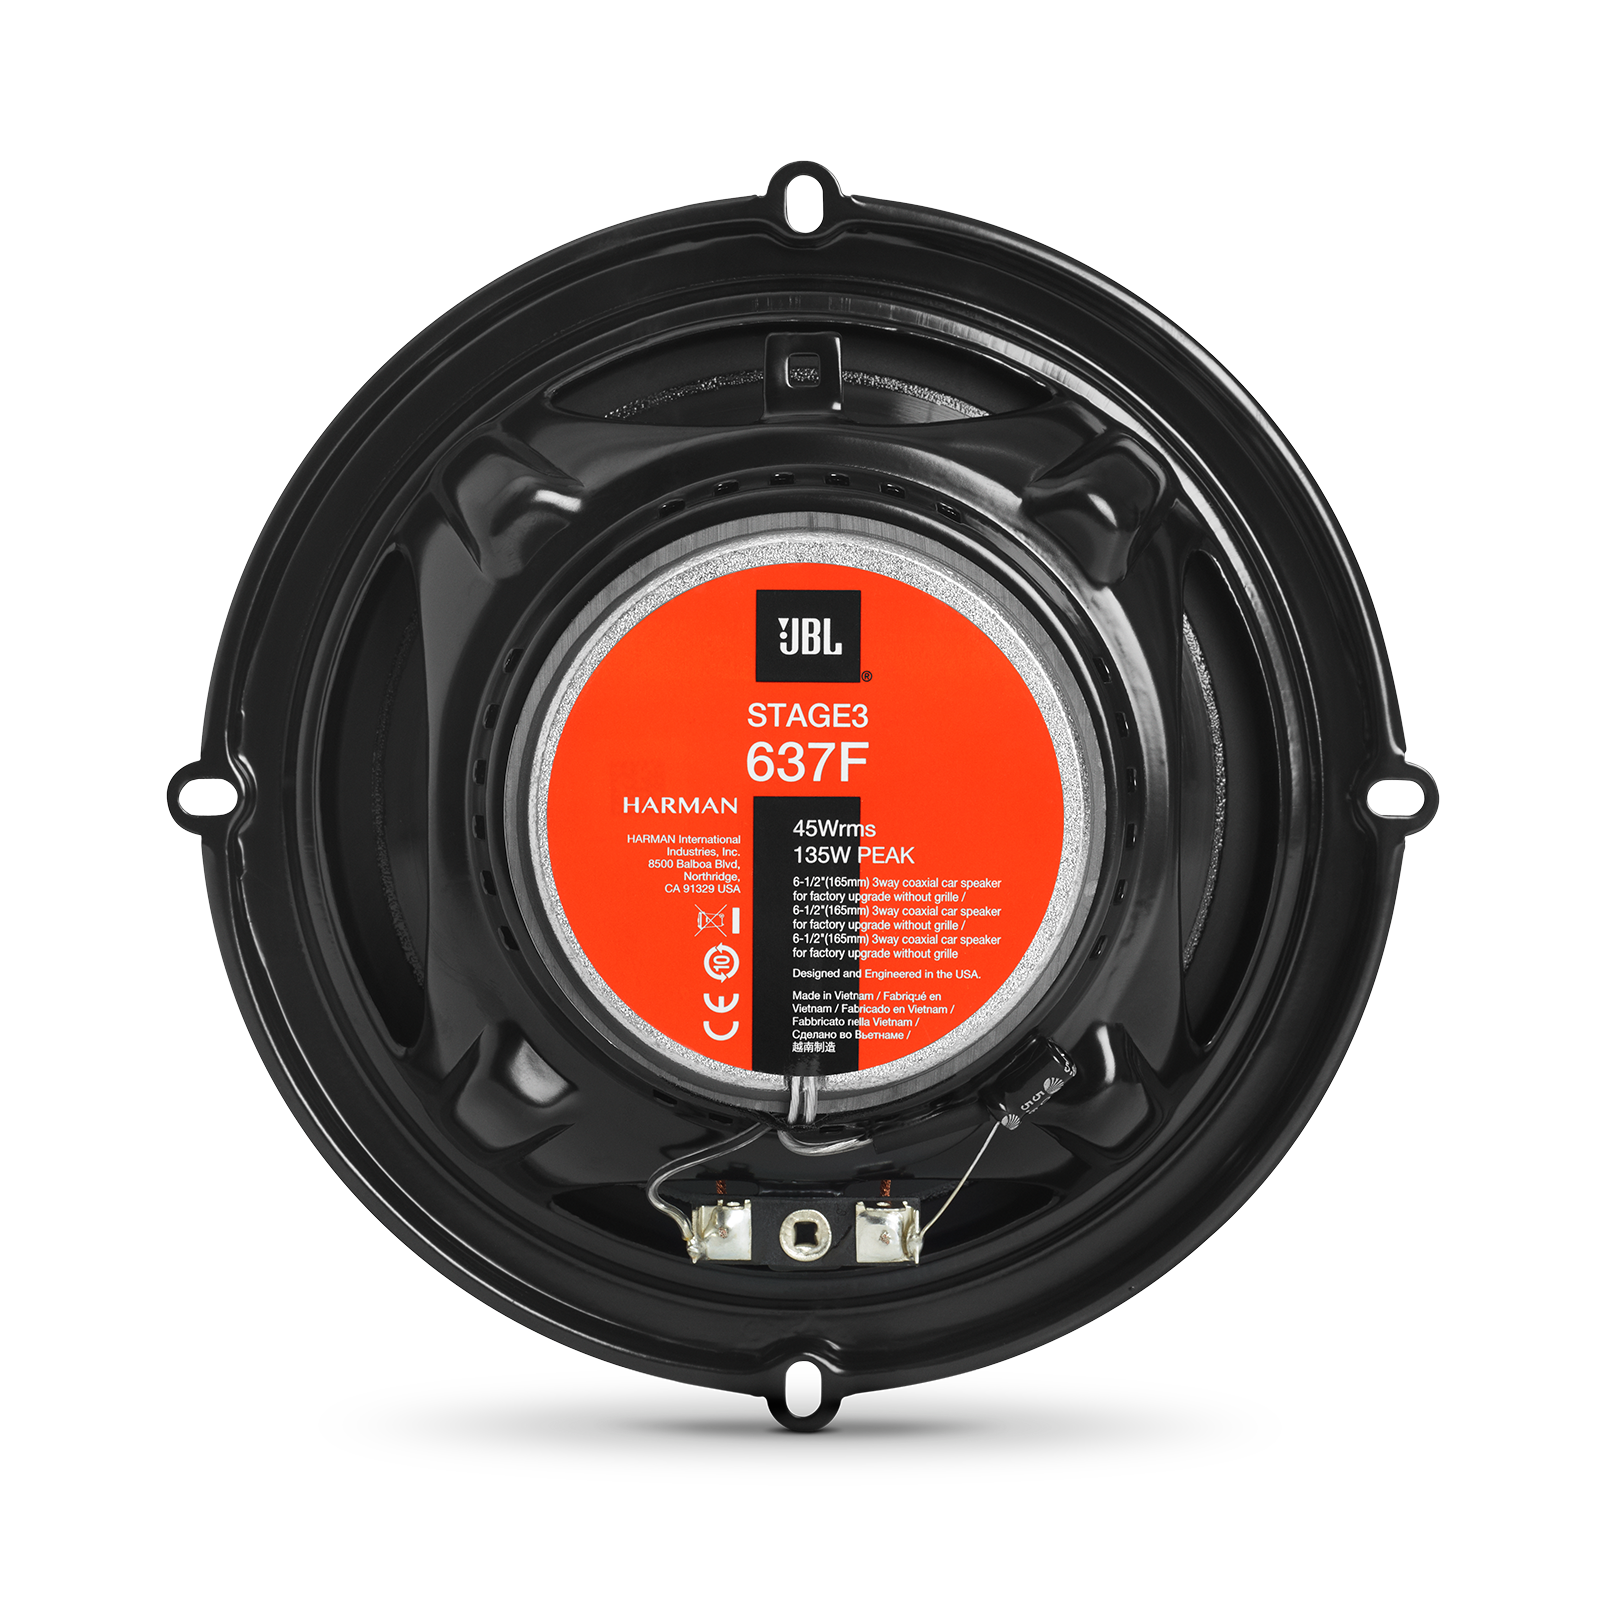 """Stage3 637F - Black - 6-1/2""""(165mm) 3-Way car speaker for factory upgrade without grille - Back"""